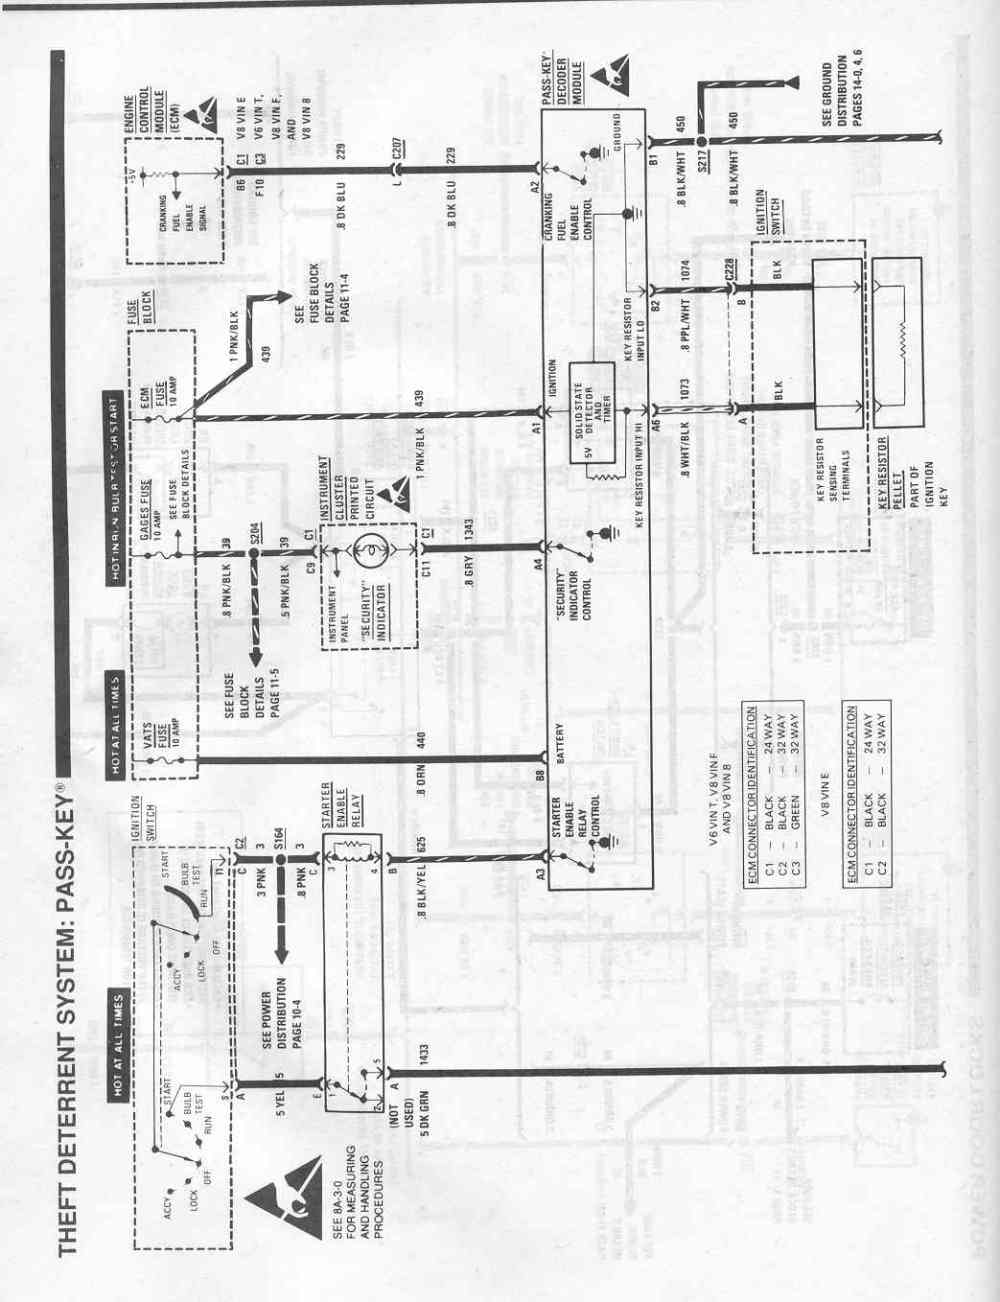 medium resolution of help need vats diagram 1992 camaro tbi third generation 1996 camaro traction control wiring diagram 78 camaro wiring diagram